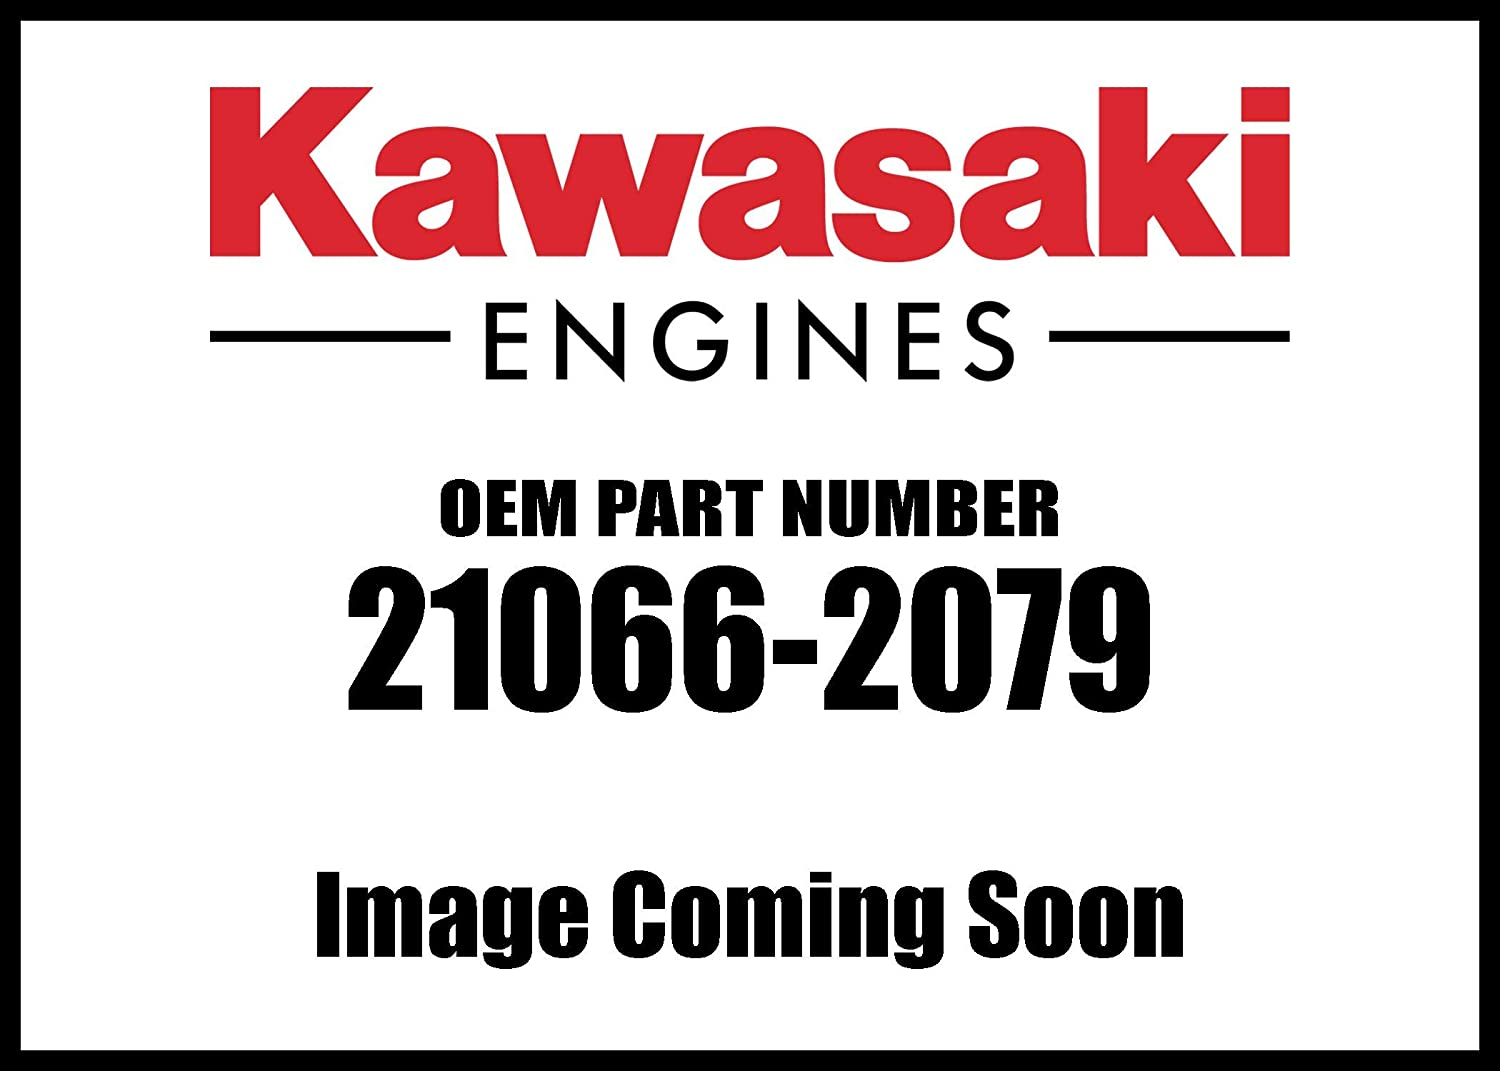 Kawasaki Engine Fd750d Regulator Voltage 21066-2079 New OEM